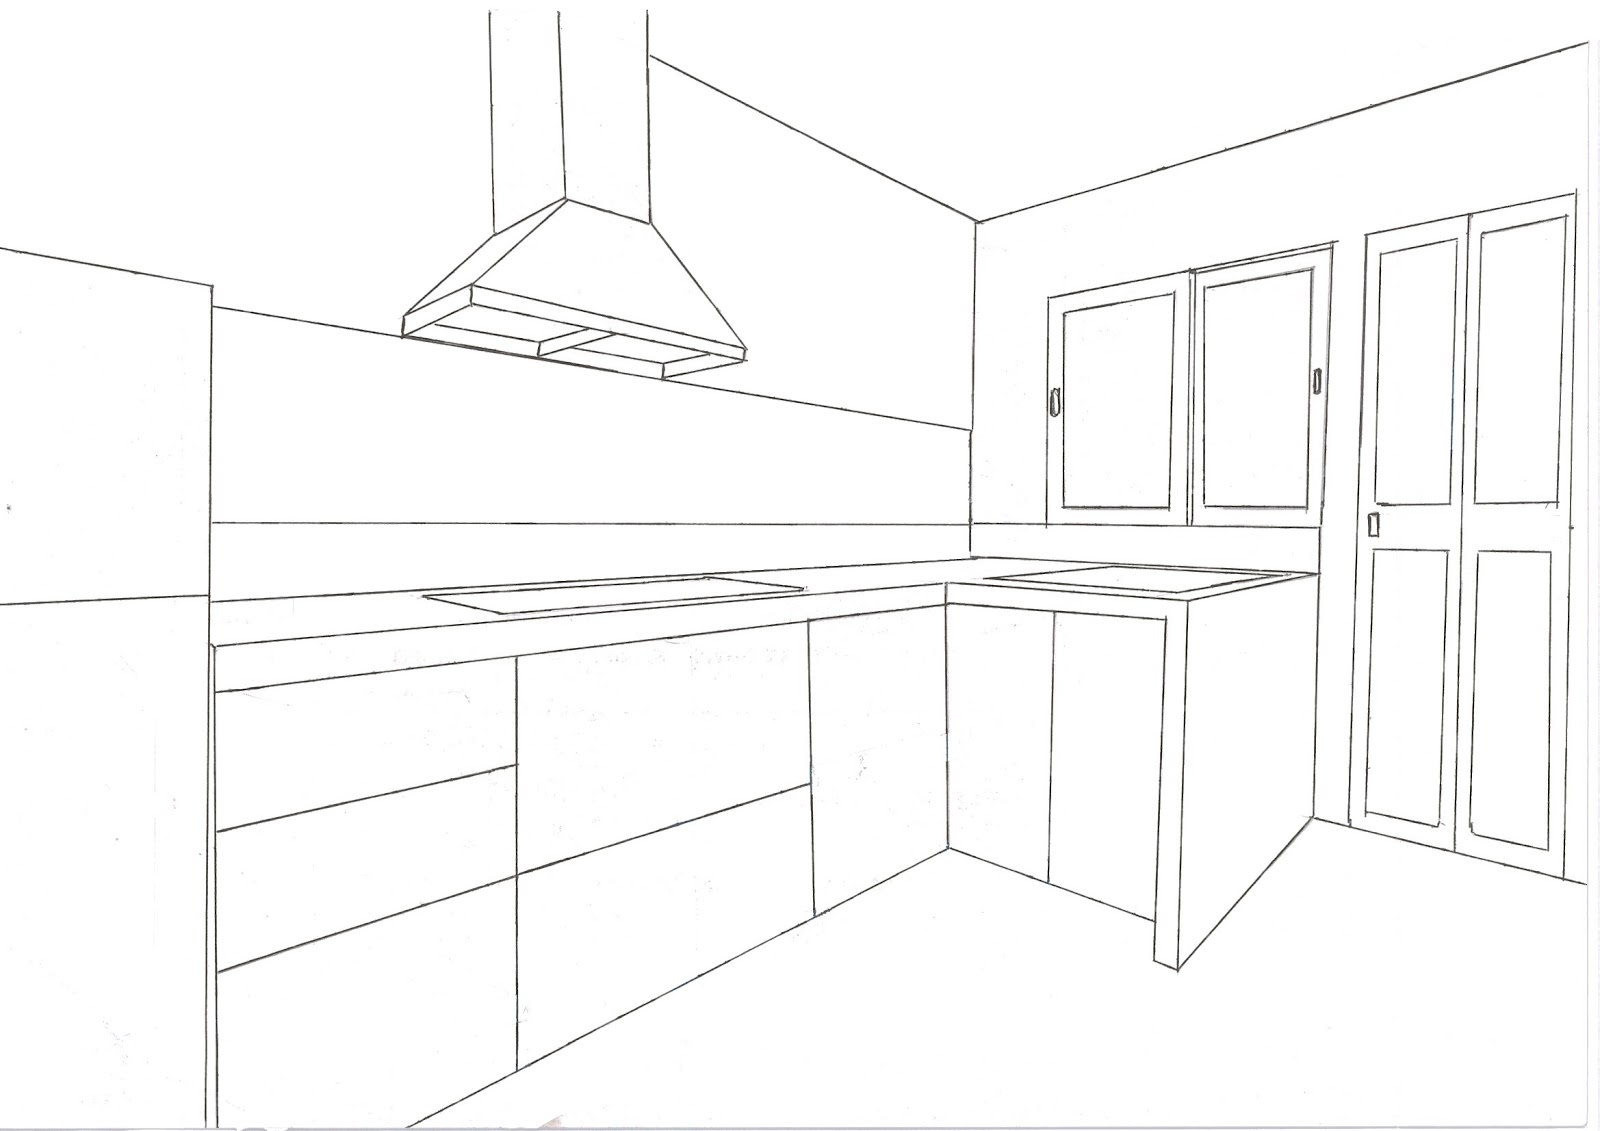 3D Drawing of Kitchen Cabinet